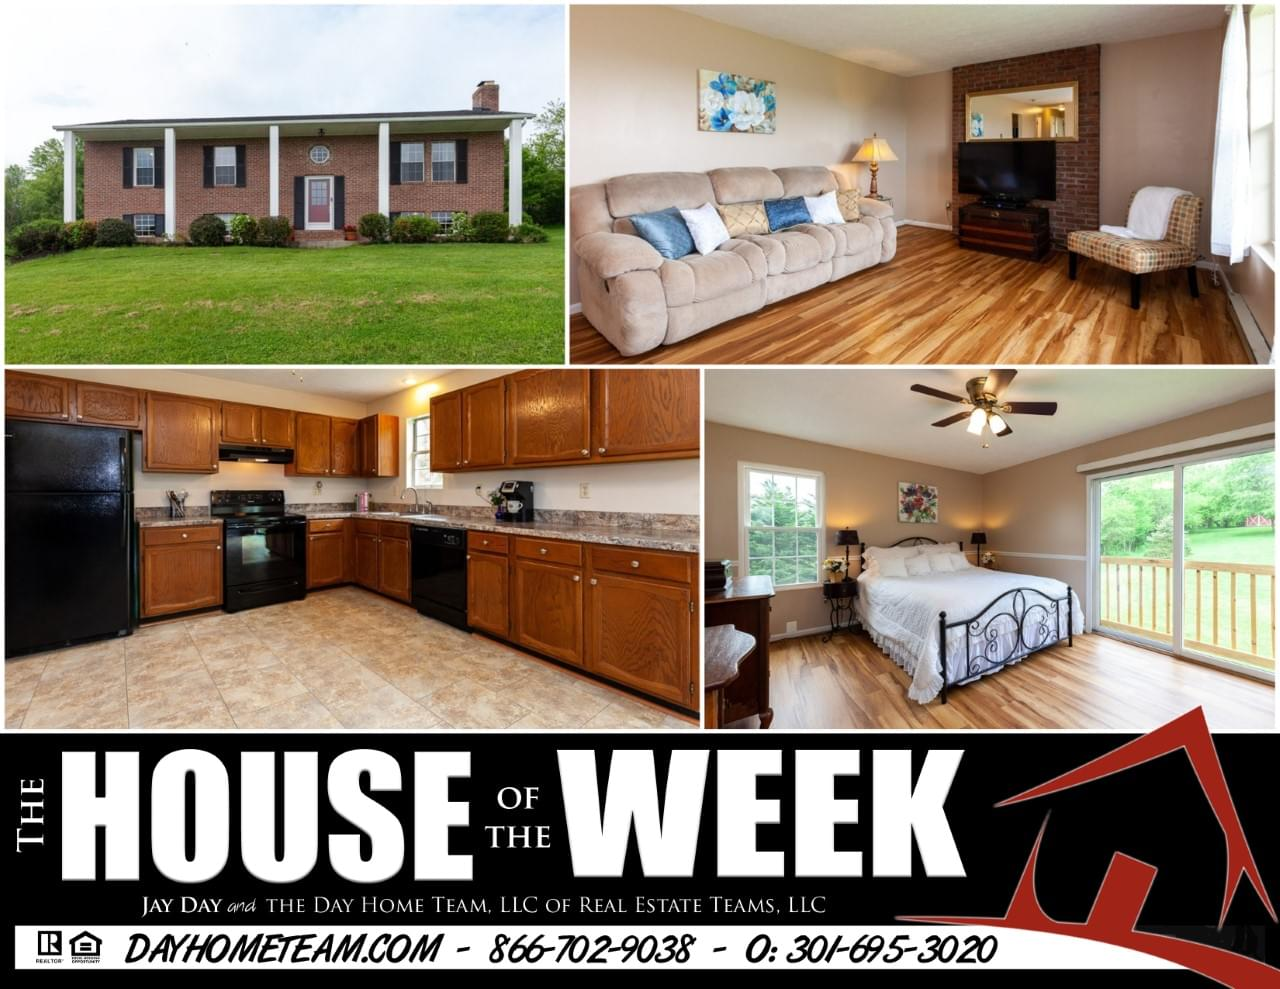 608 Stayman Dr, FALLING WATERS, WV, 25419